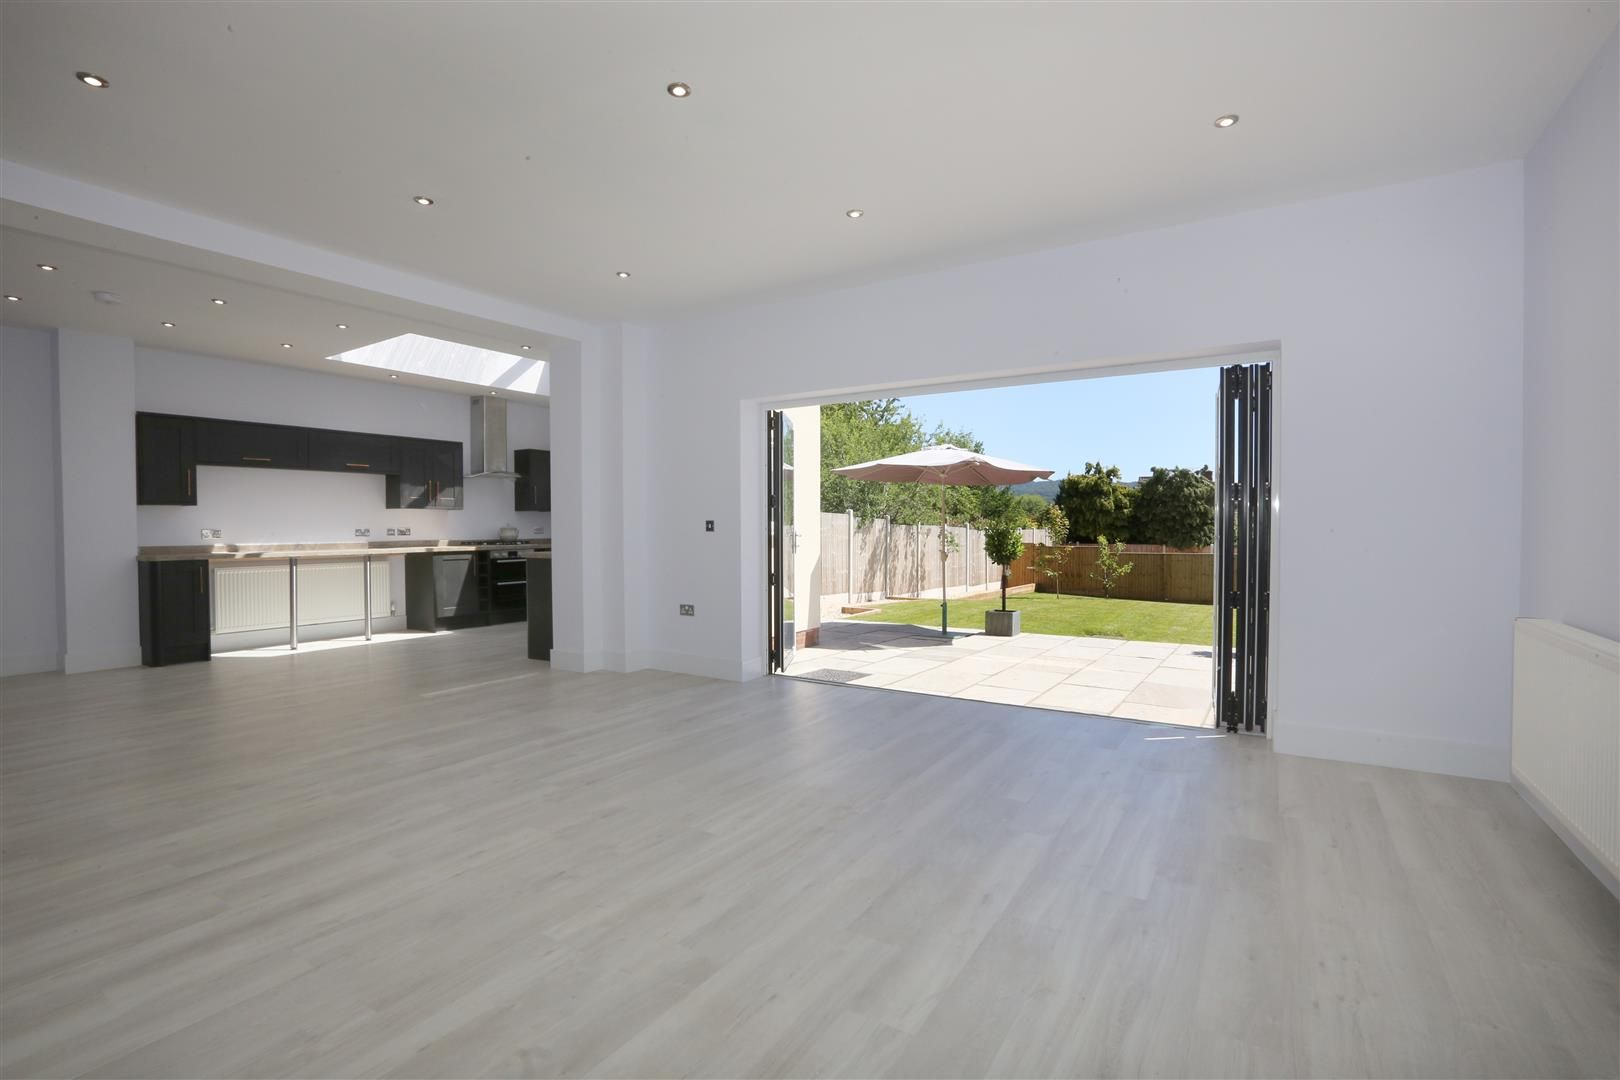 4 bed detached for sale in Hagley  - Property Image 6